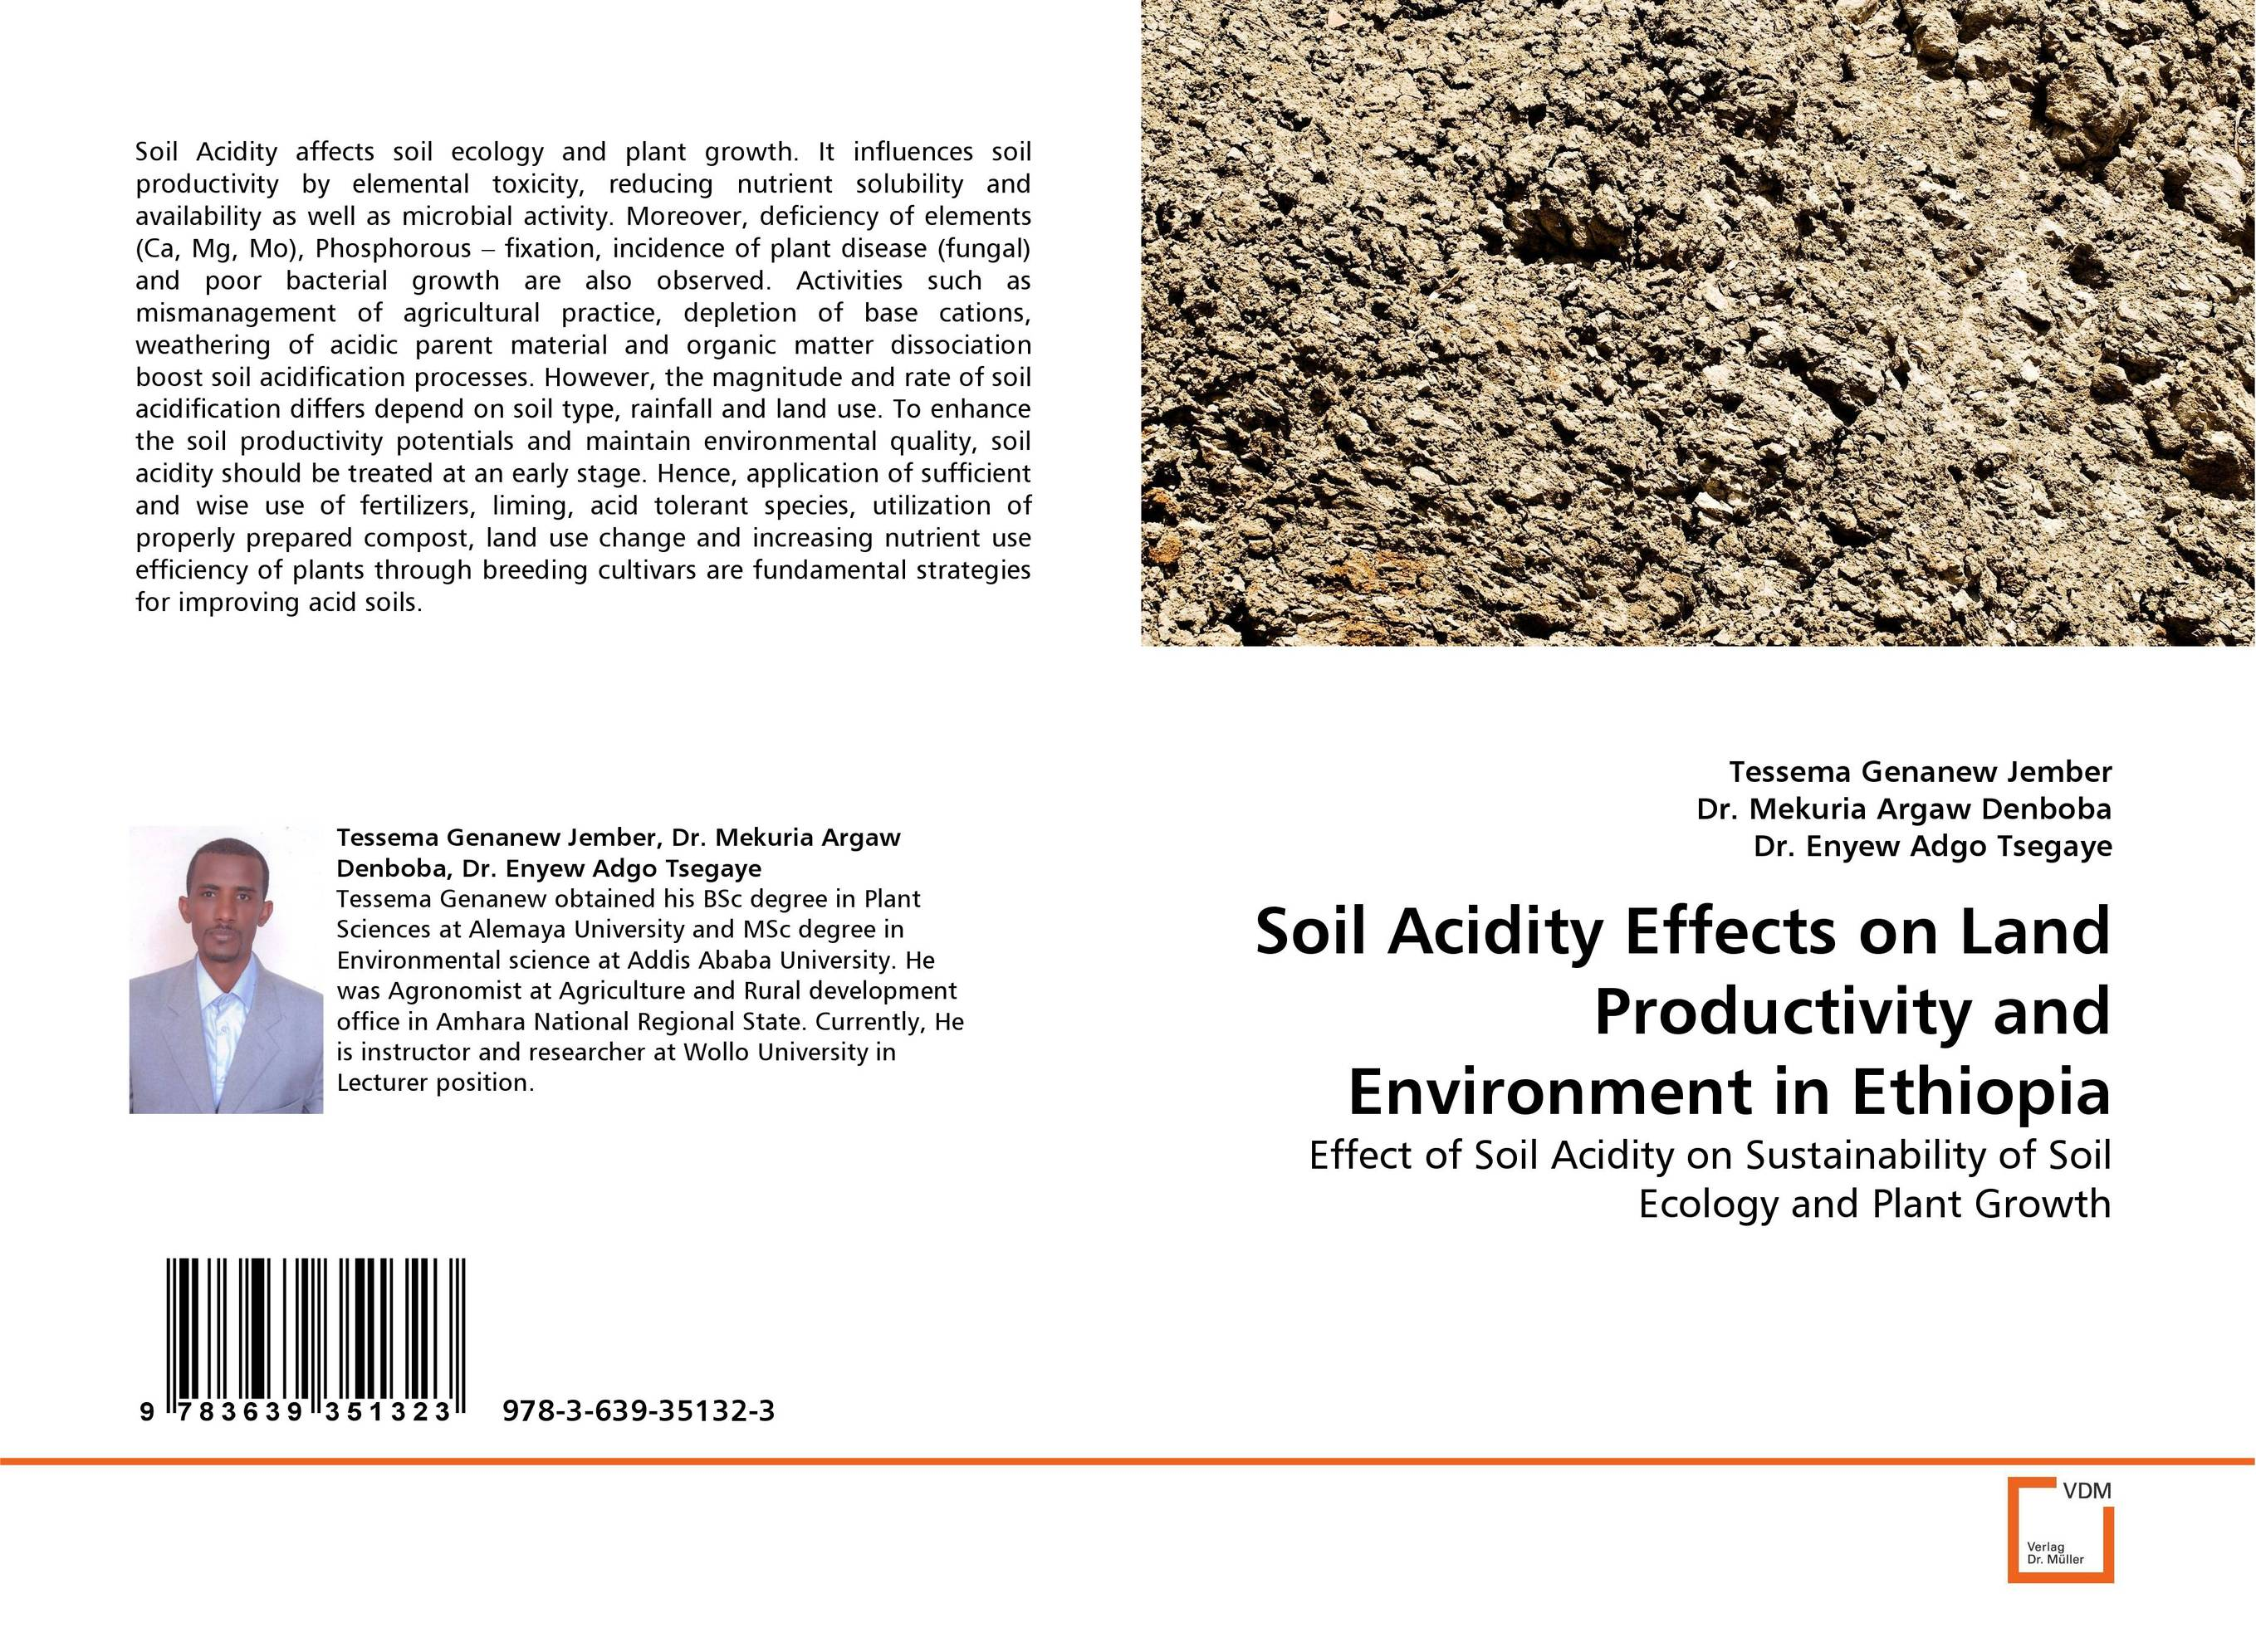 Soil Acidity Effects on Land Productivity and Environment in Ethiopia